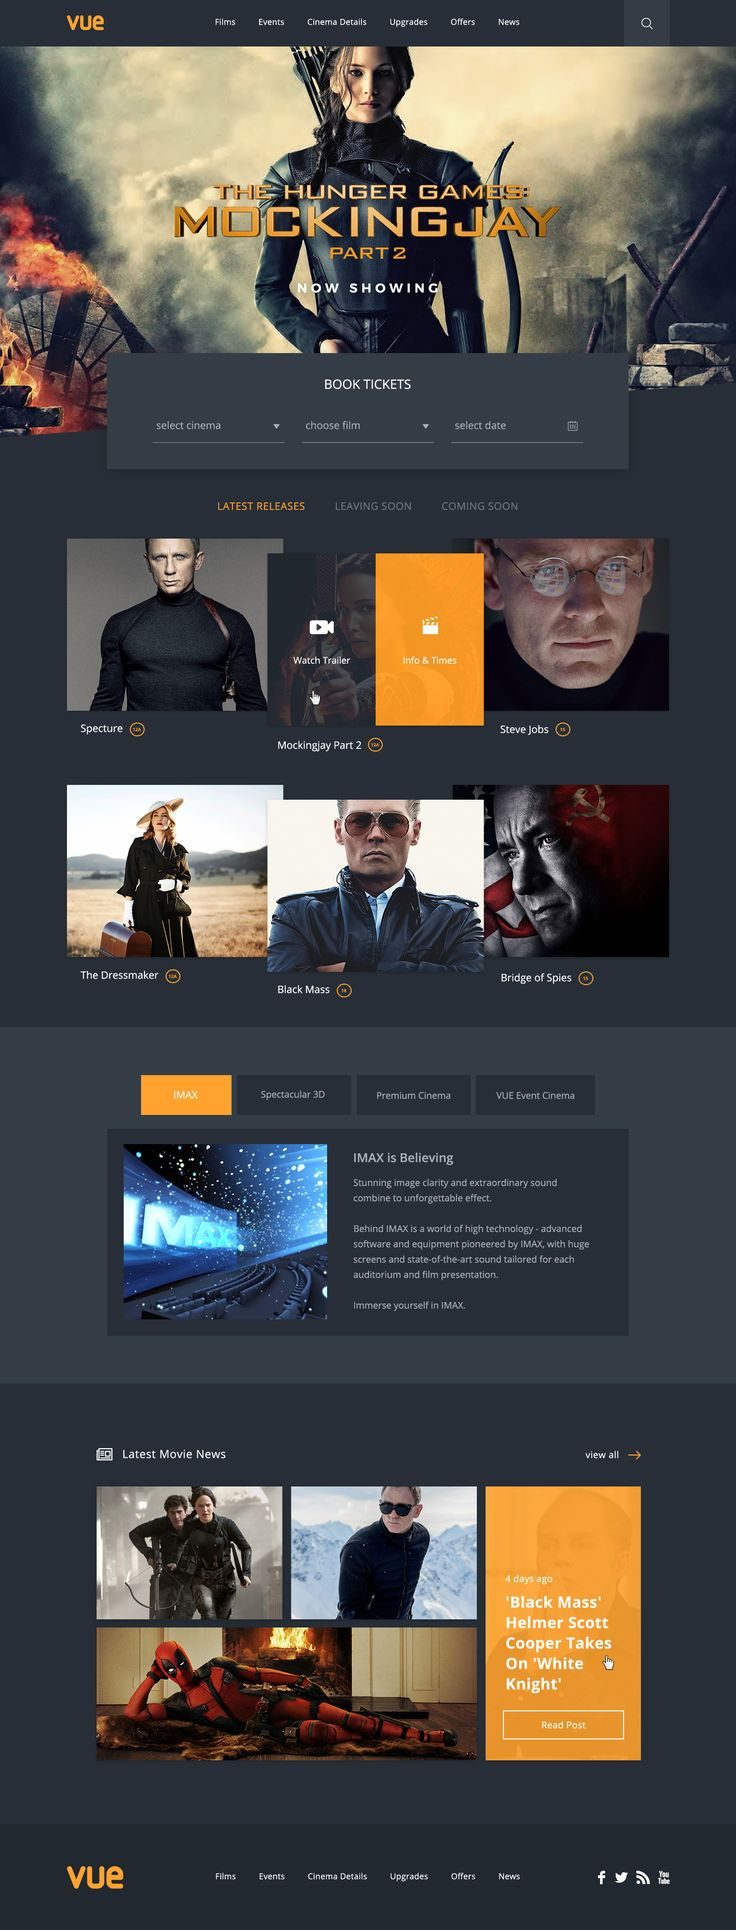 I regularly visit the VUE website when visiting the cinema and think it could be improved, so I decided to give it a go as a little side project...